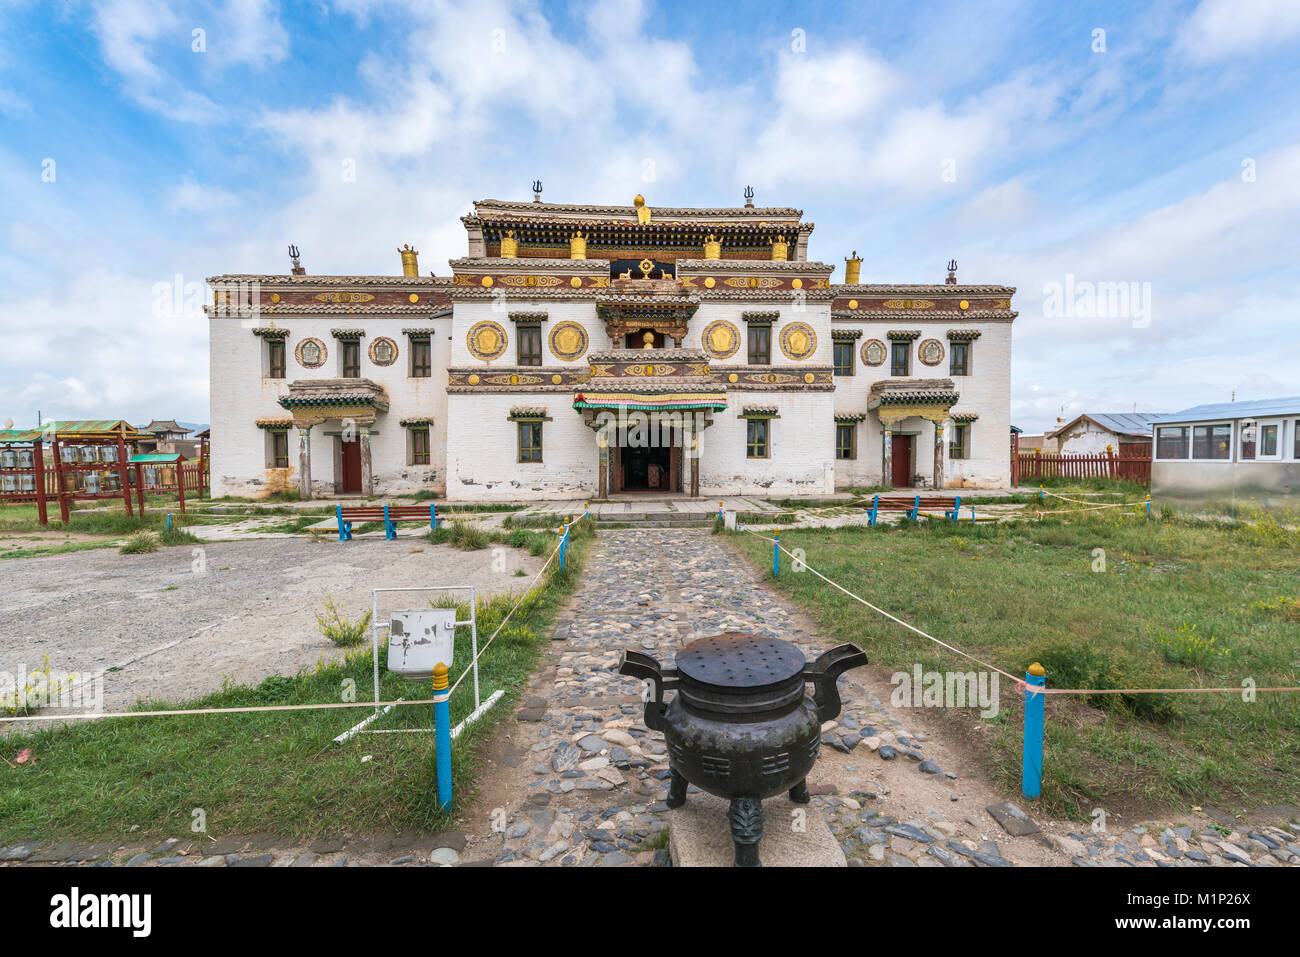 Main temple in Erdene Zuu Buddhist Monastery, Harhorin, South Hangay province, Mongolia, Central Asia, Asia - Stock Image